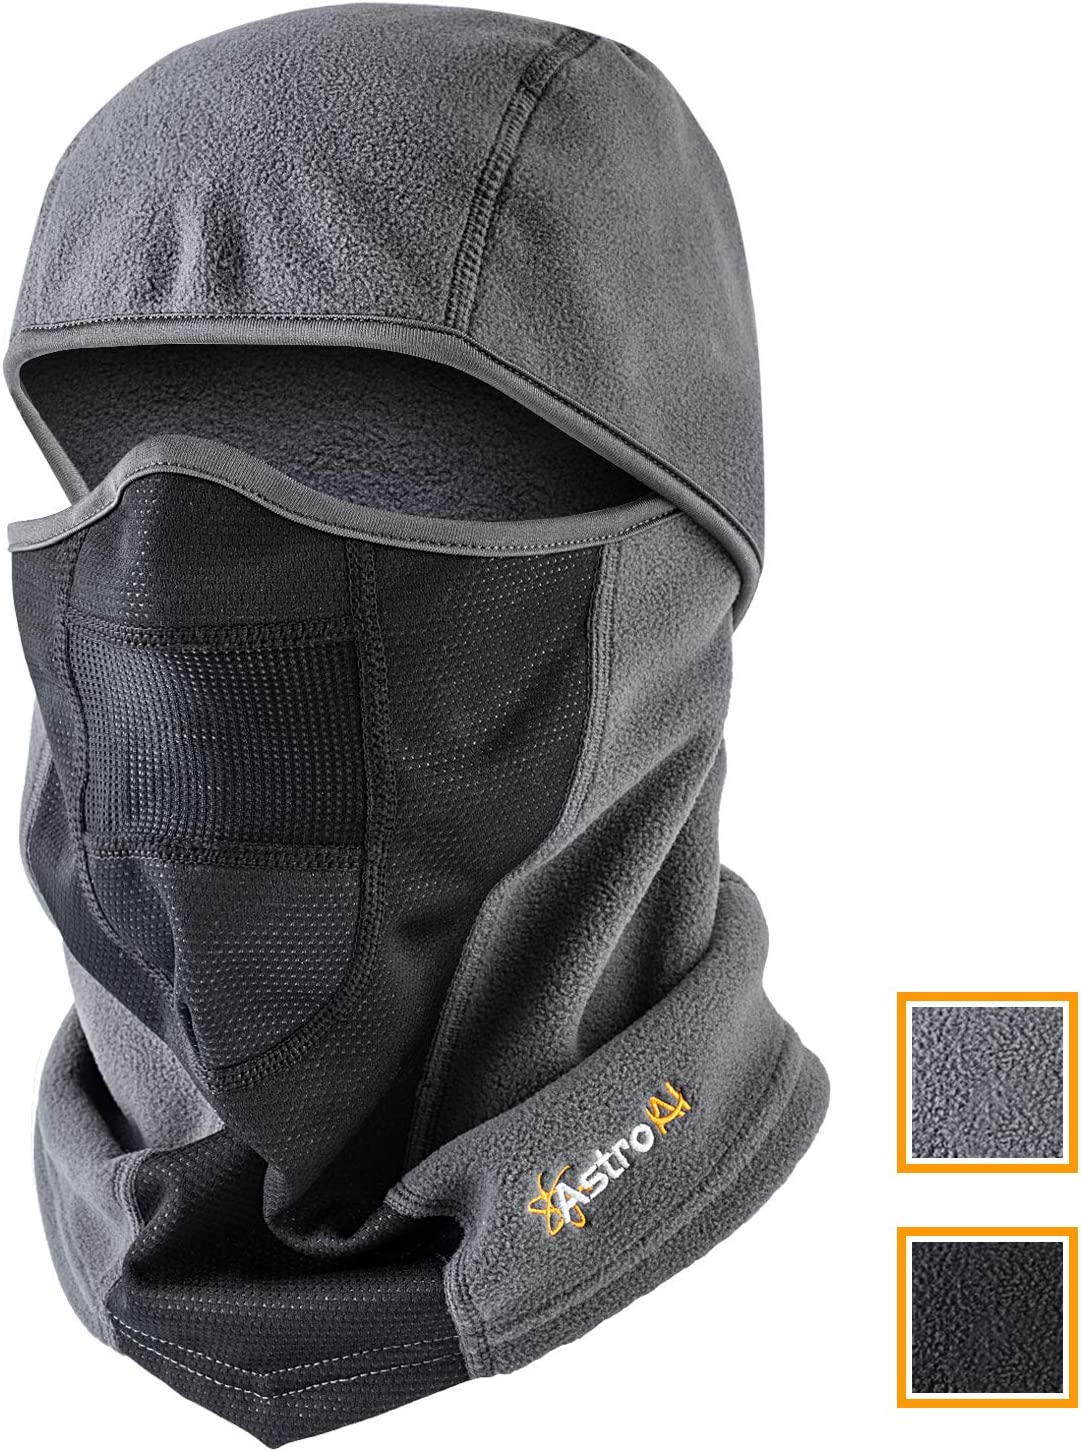 AstroAI Ski Mask Winter Balaclava Windproof Breathable Face Mask for Cold Weather (Superfine Polar Fleece, Grey)